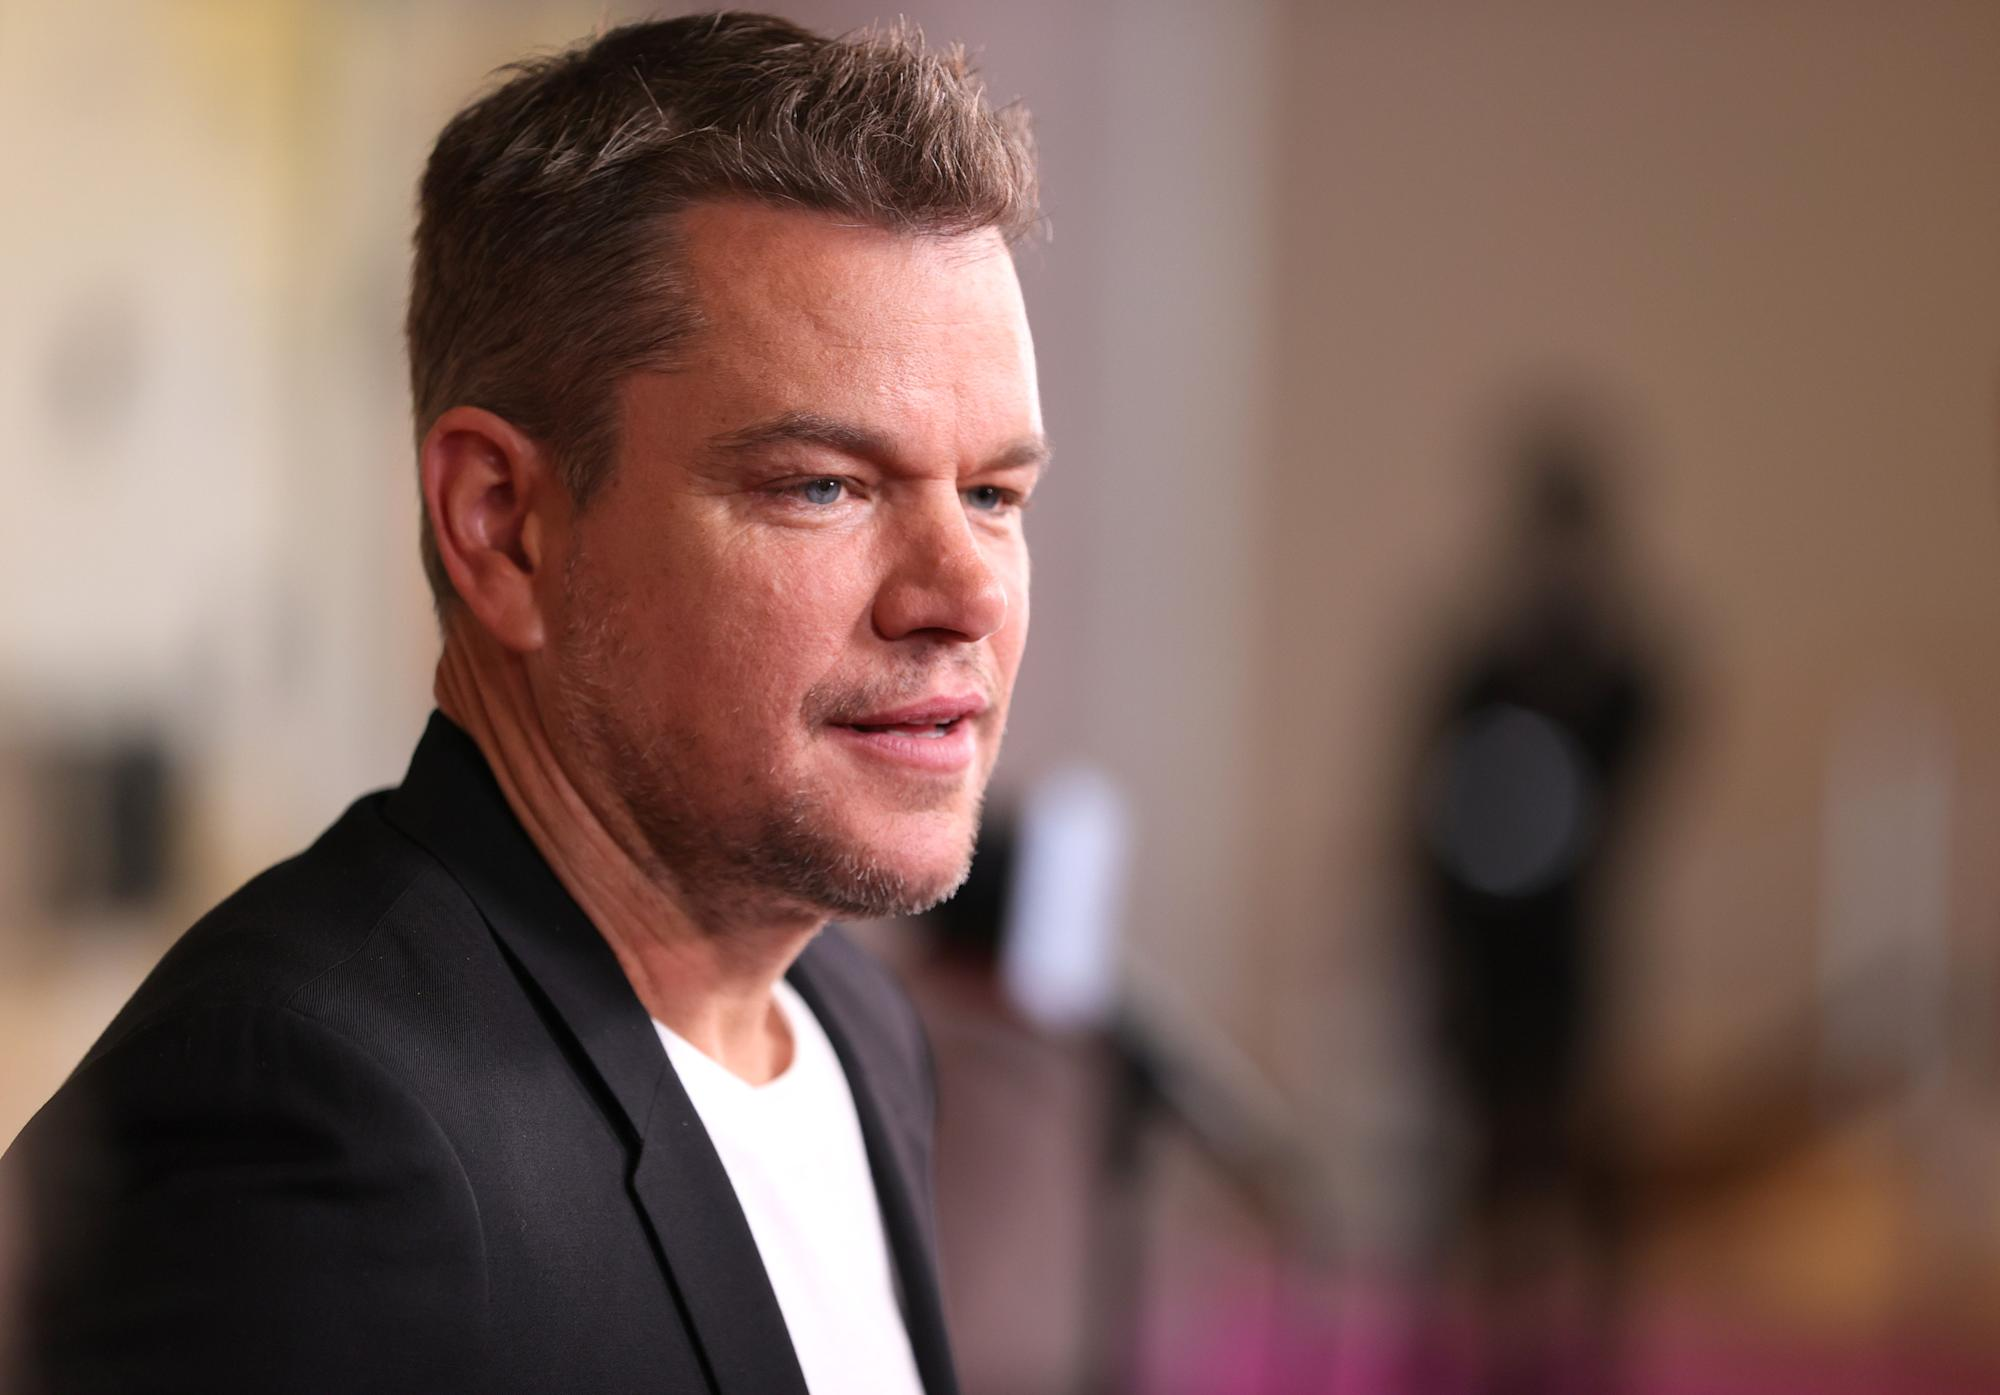 Matt Damon says he stopped saying the 'f-slur' after his daughter wrote a treatise explaining why it's 'dangerous'